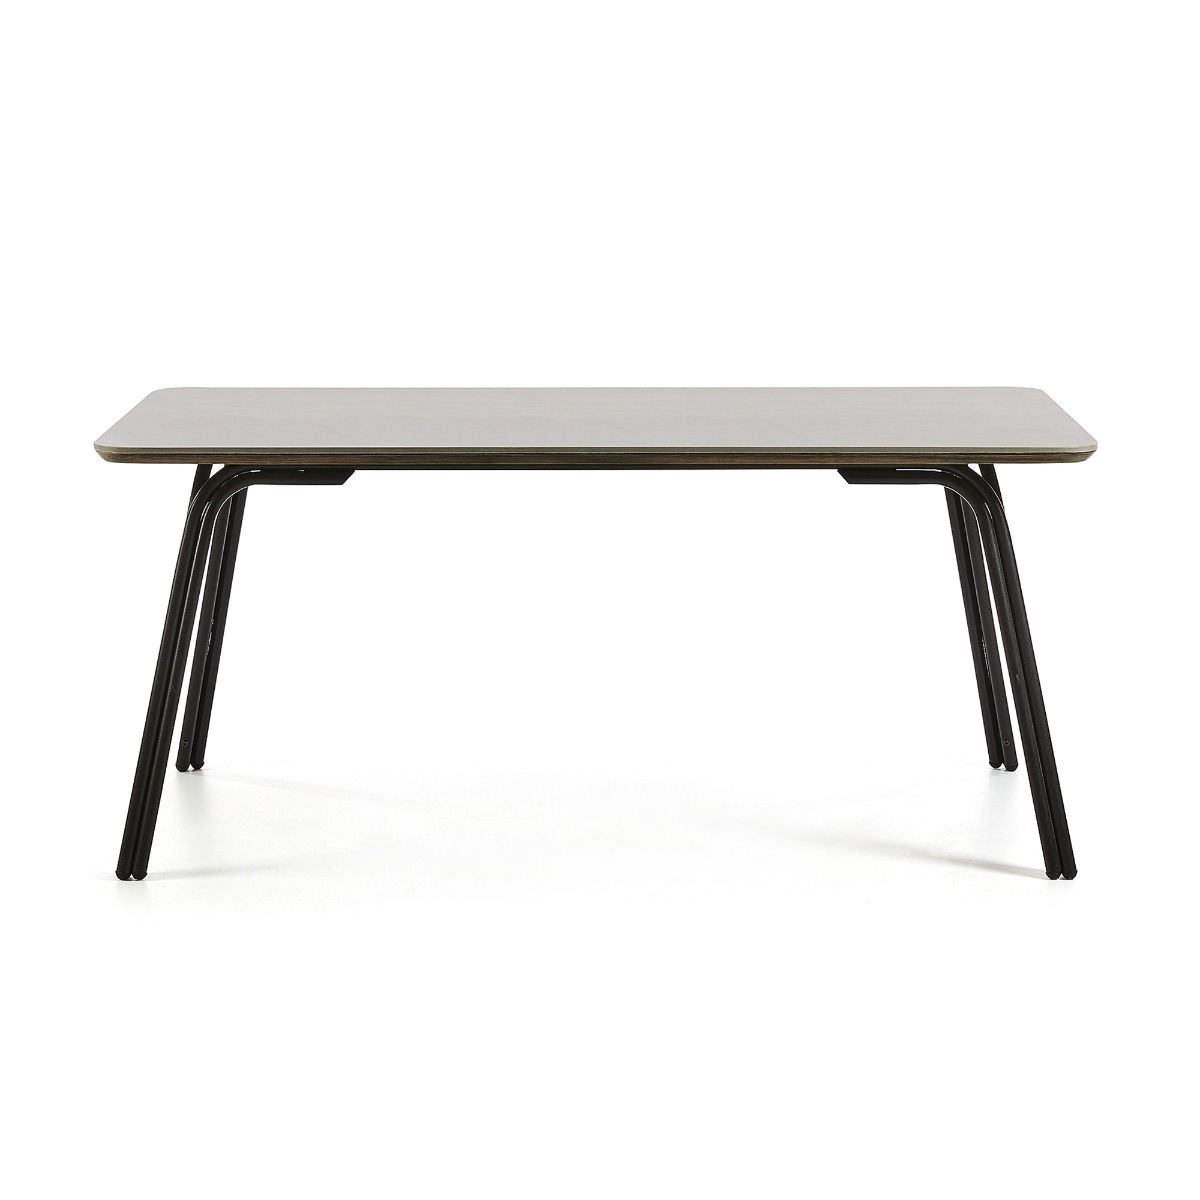 Liosia Poly Cement & Steel Dining Table, 180cm